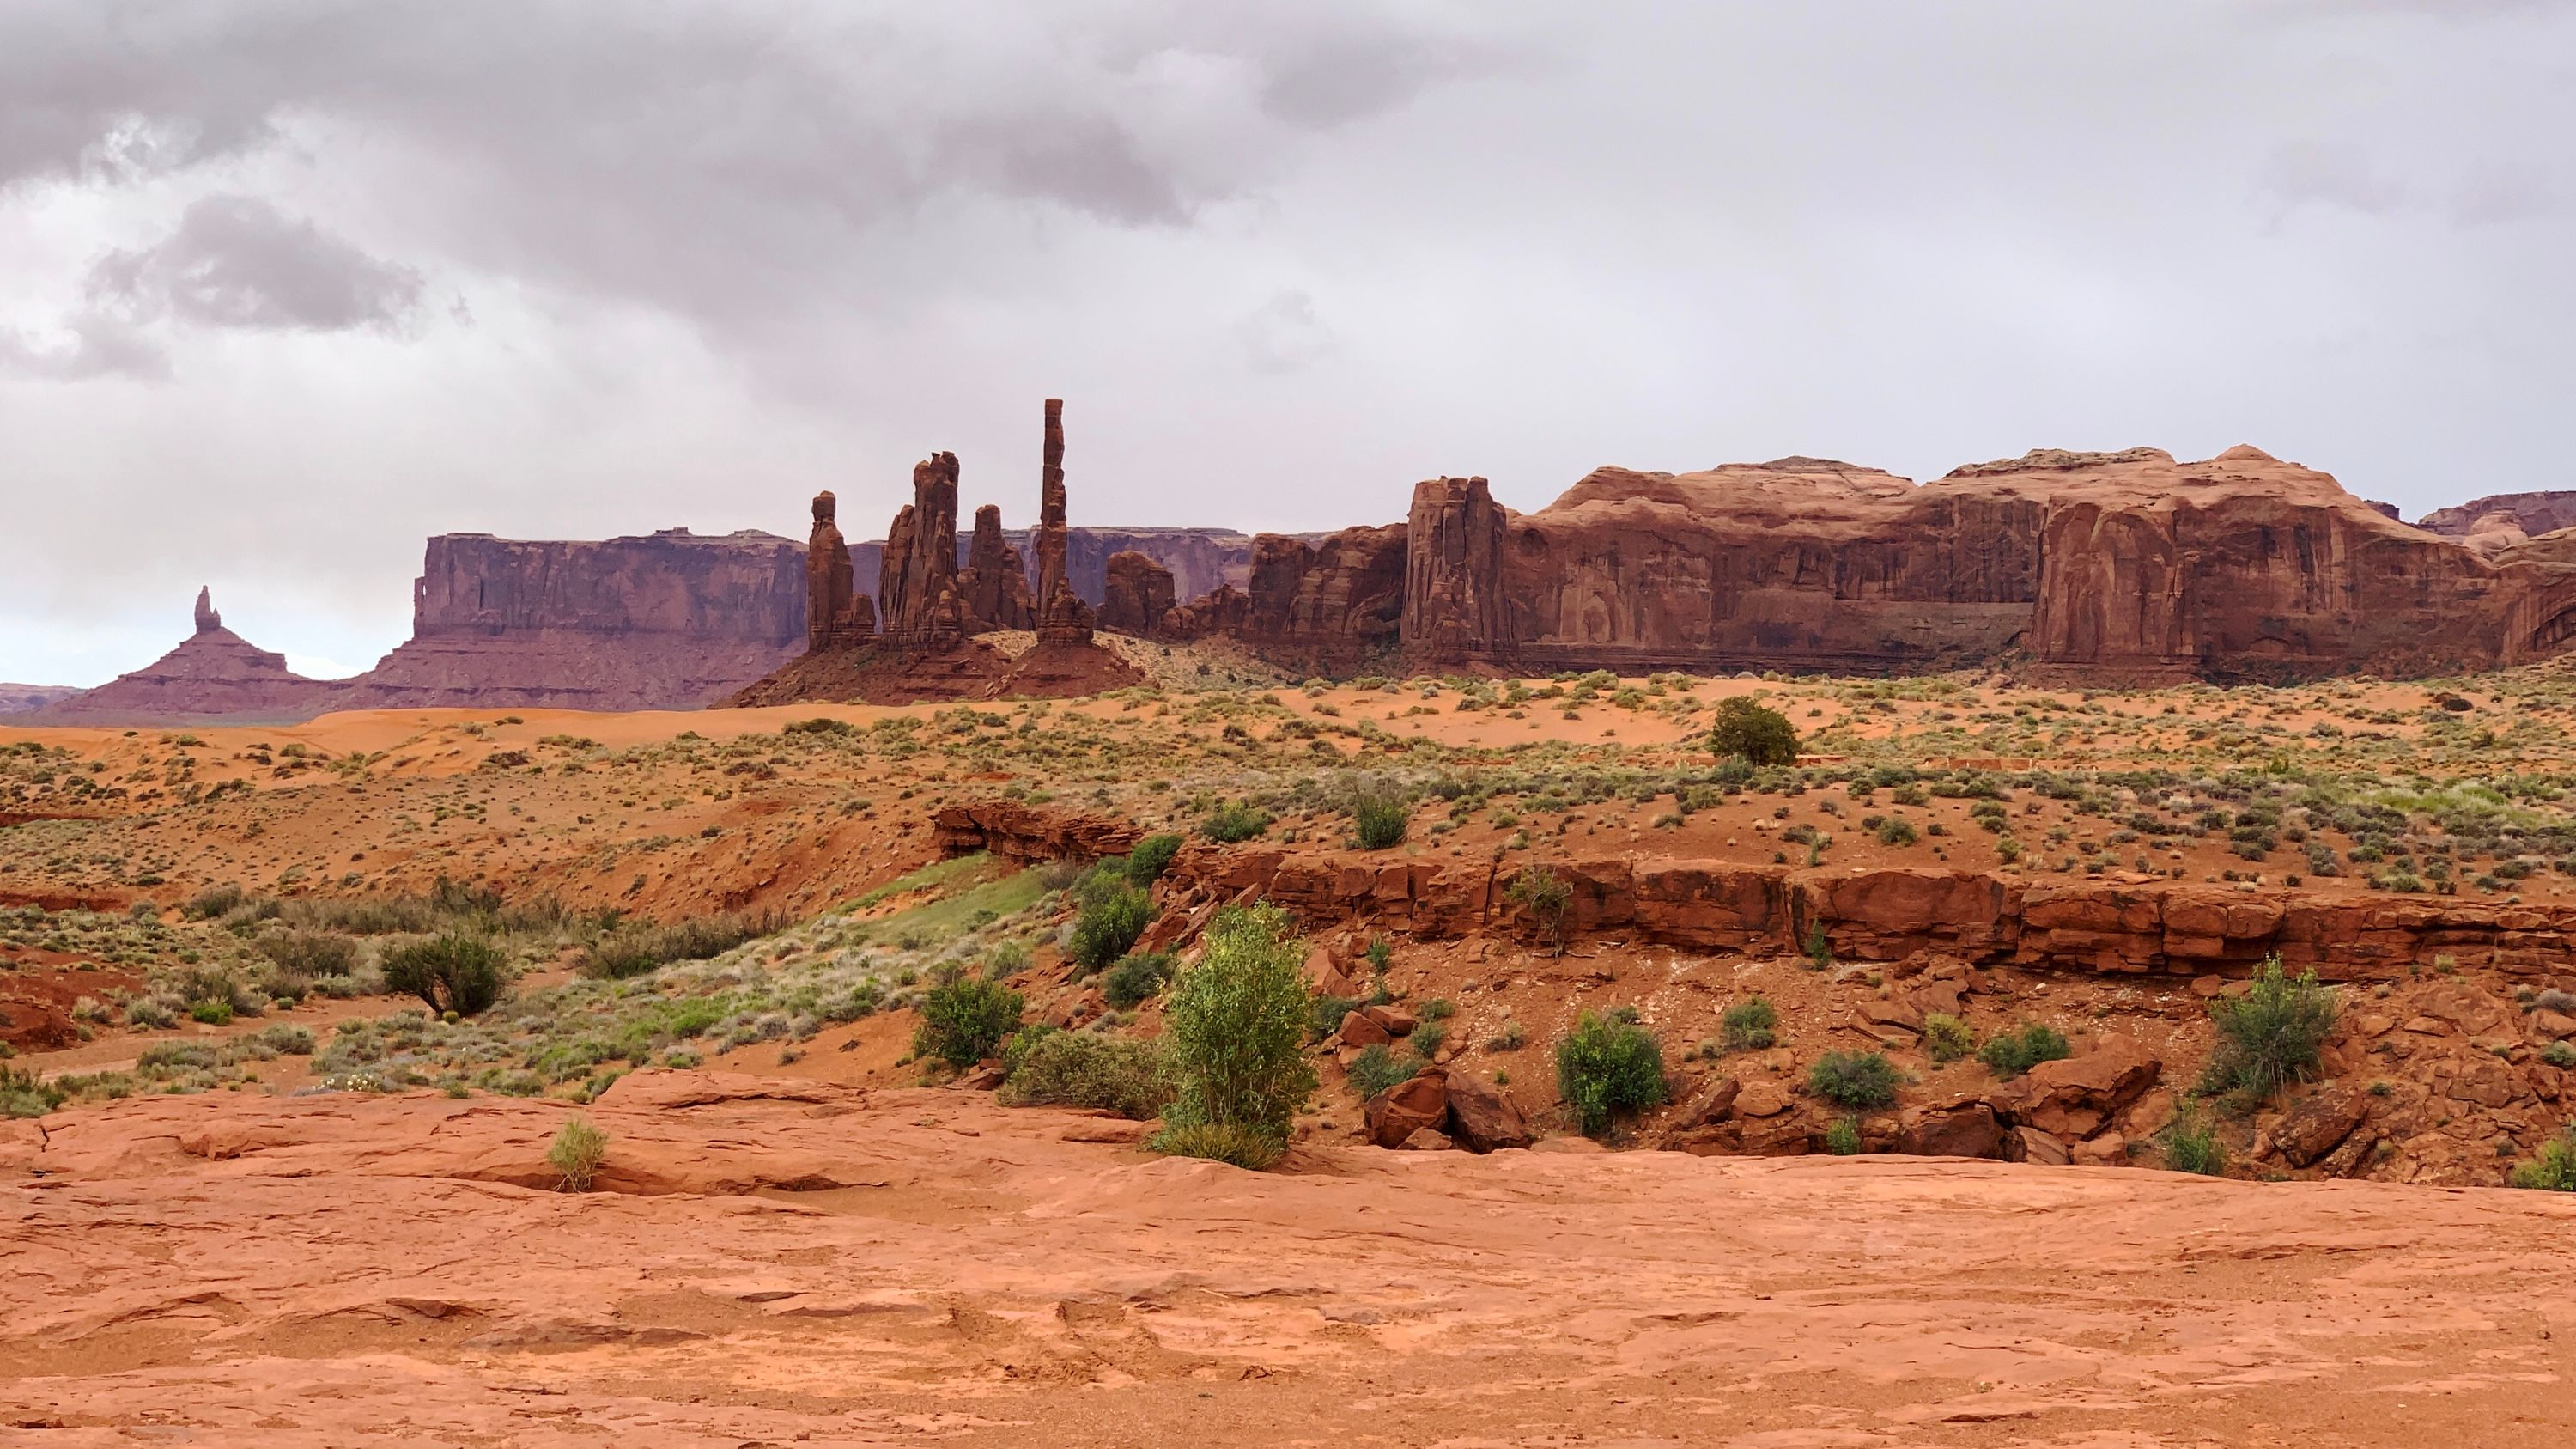 A view near The Thumb, Monument Valley